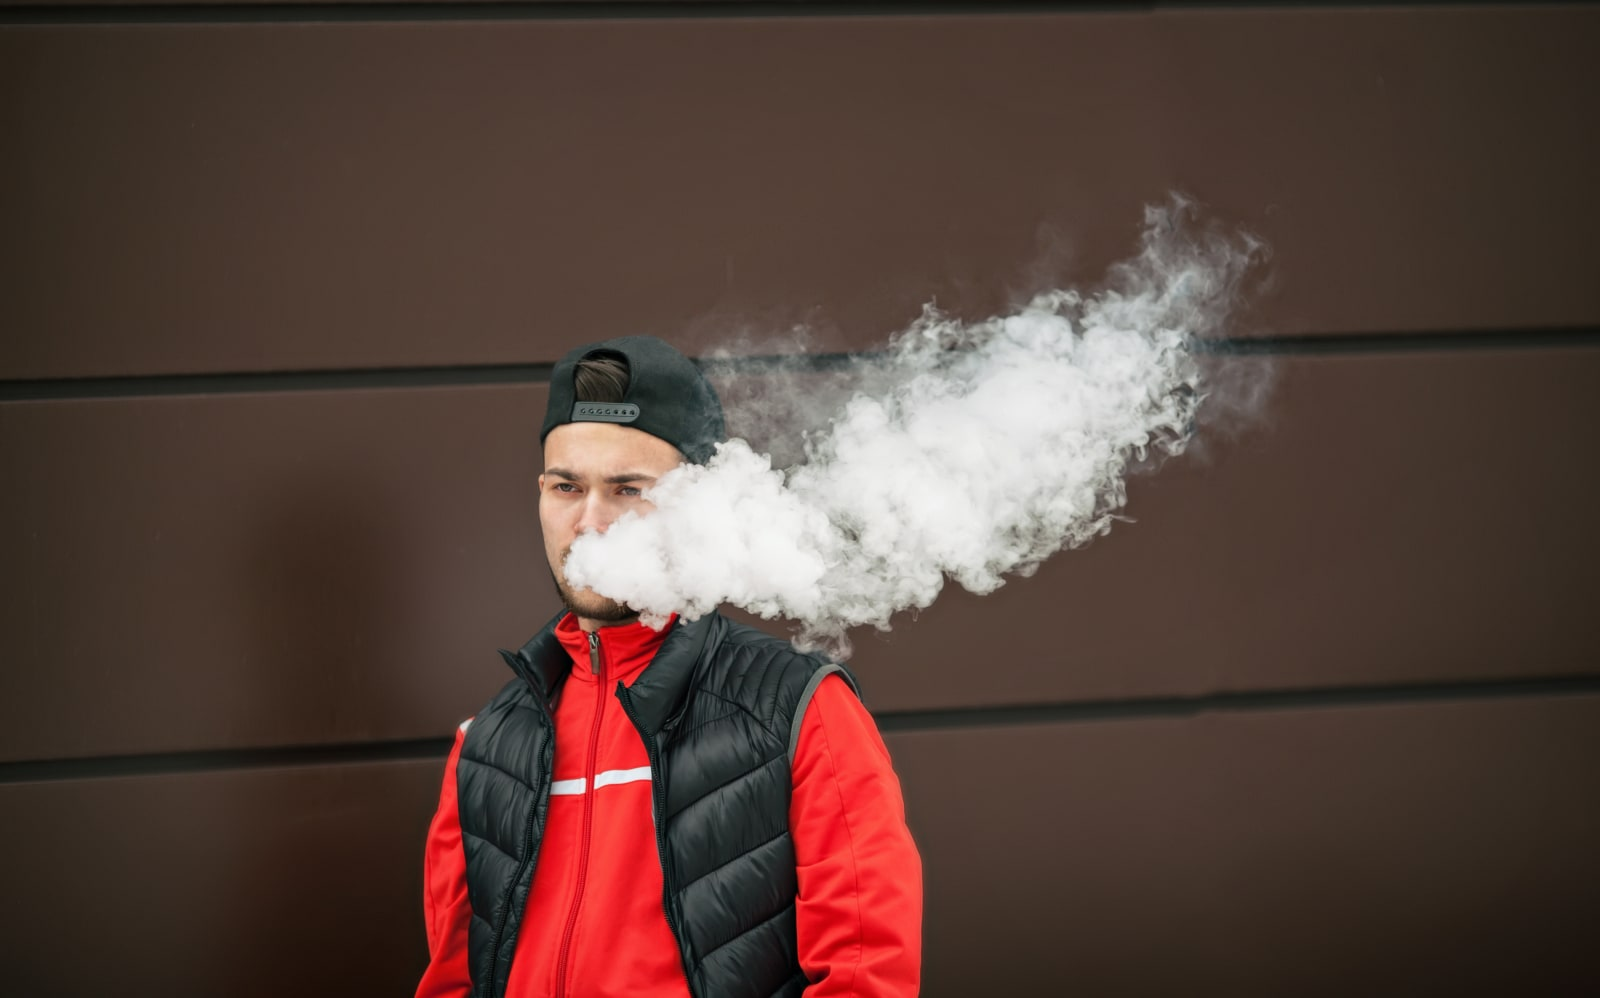 The Trump administration plans to ban flavored e-cigs to curb teen vaping